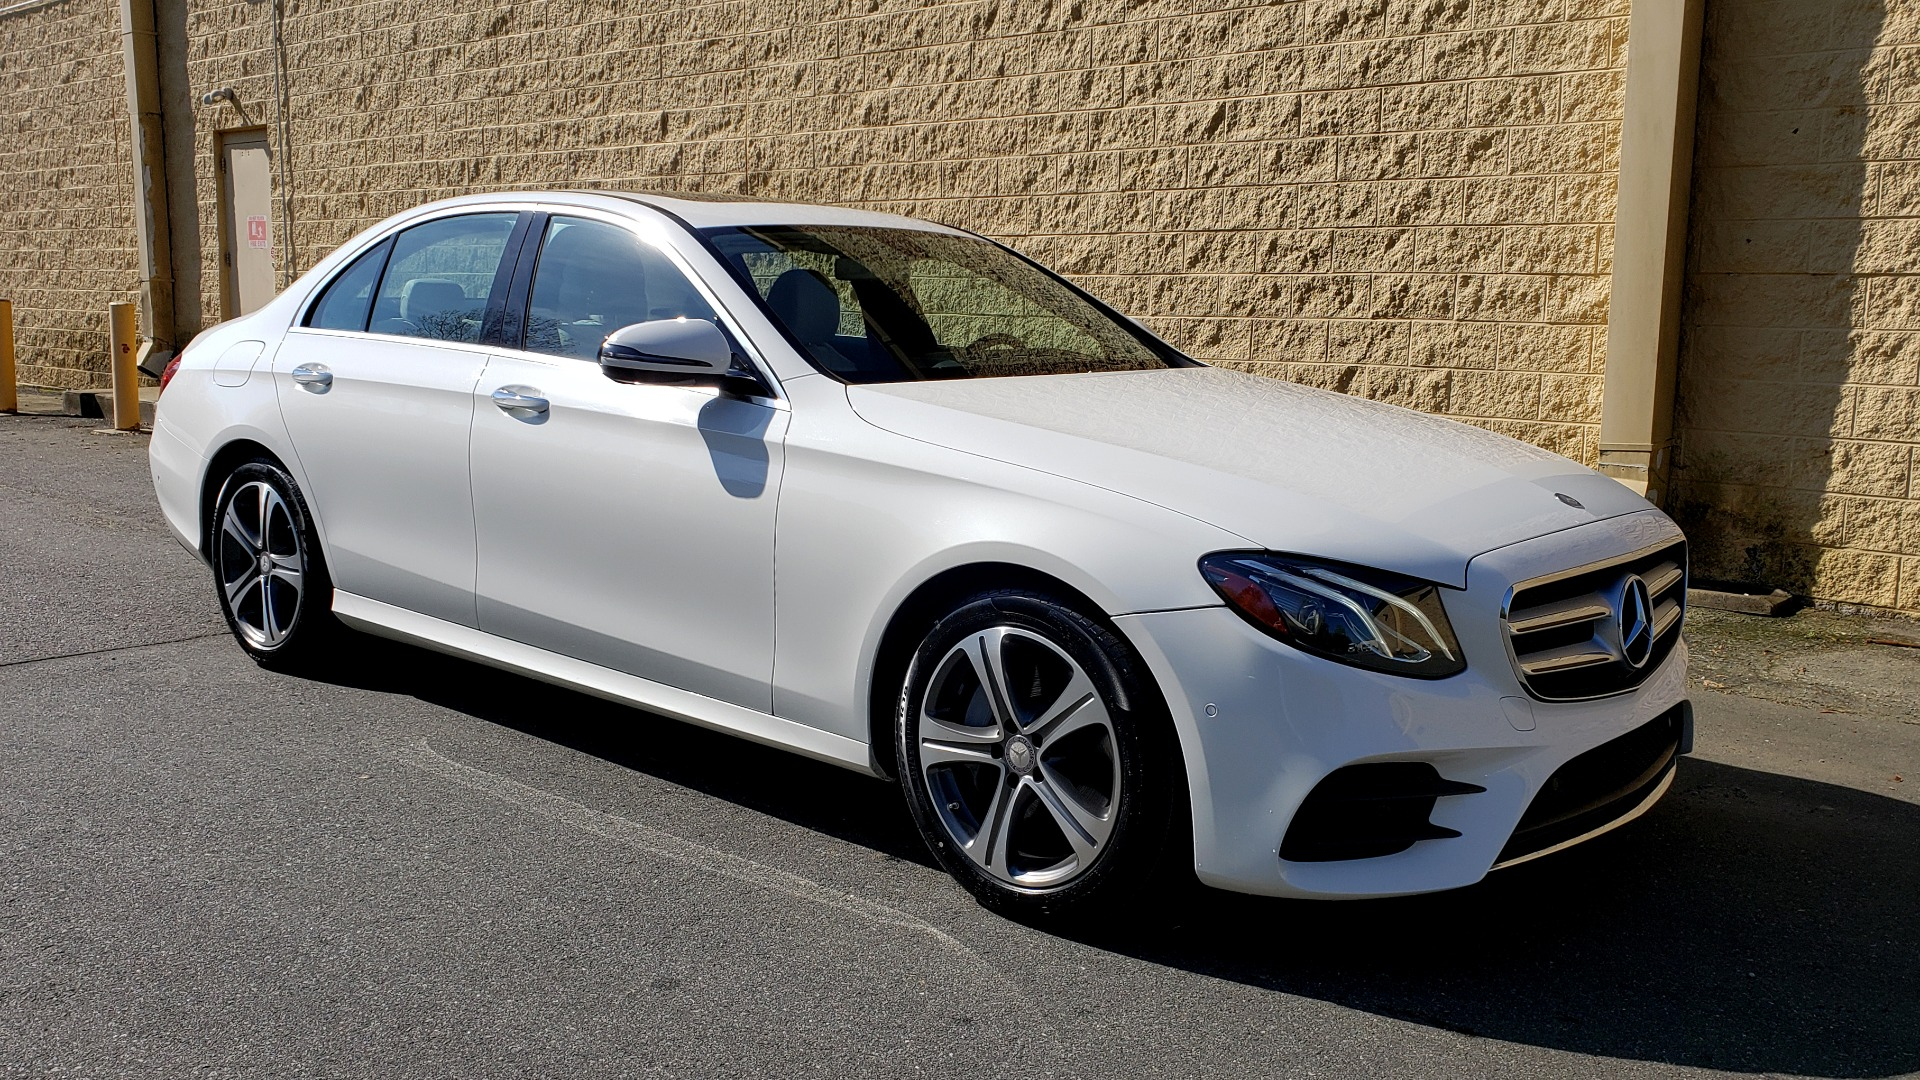 Used 2017 Mercedes-Benz E-Class E 300 PREMIUM / RWD / NAV / SNF / PARKING PILOT / REARVIEW / BURMESTER for sale Sold at Formula Imports in Charlotte NC 28227 4